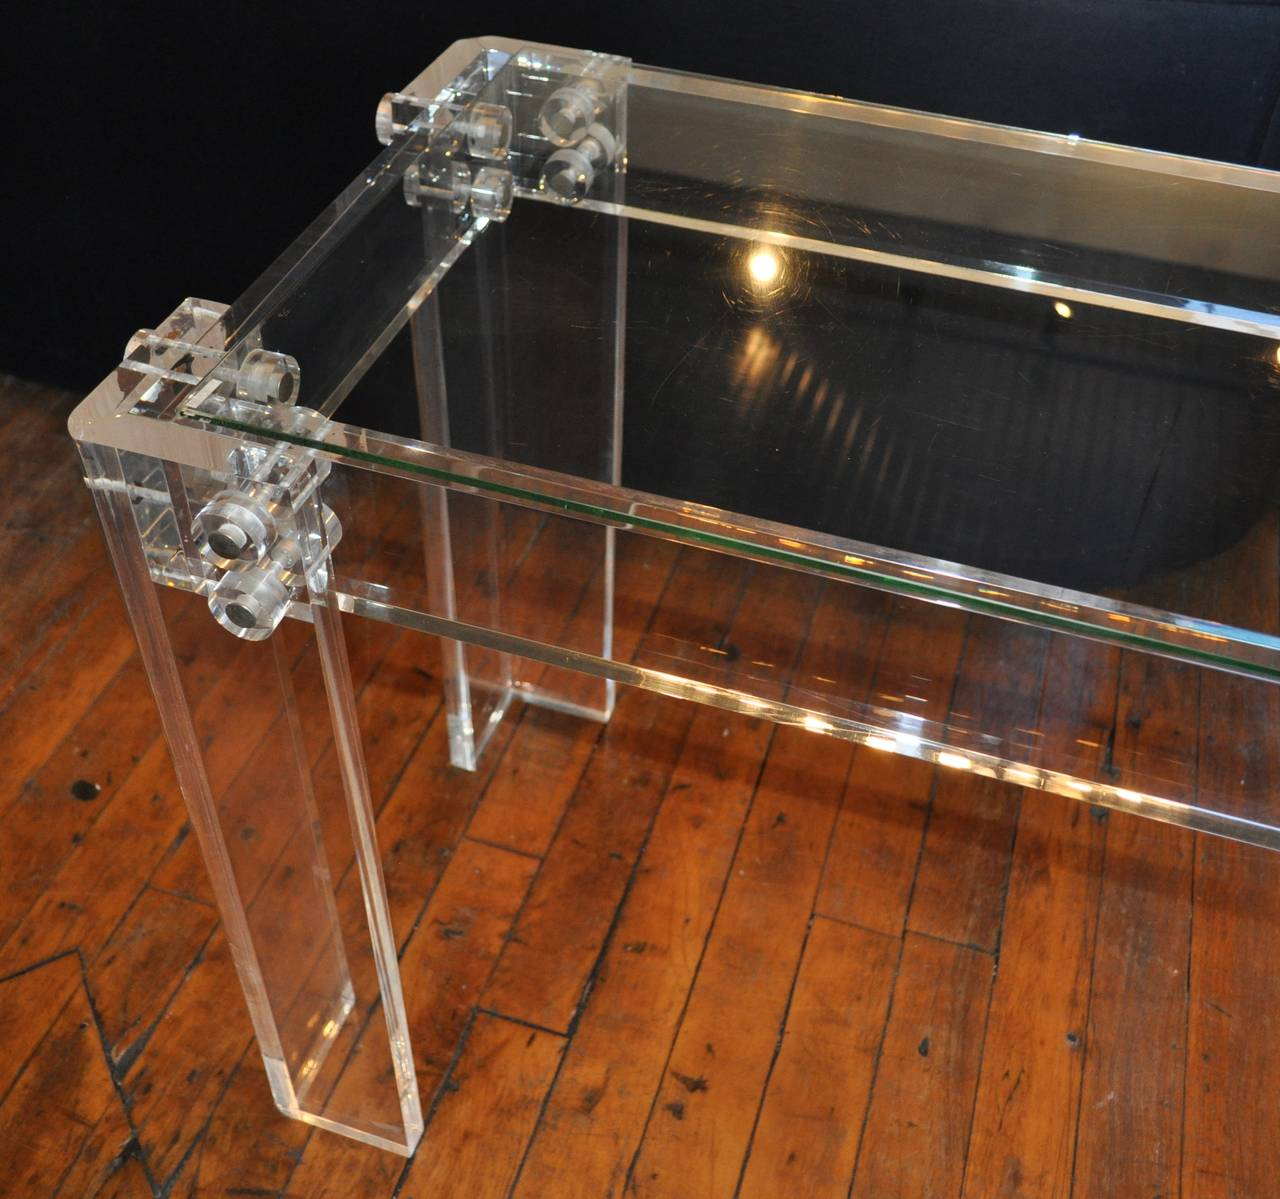 Sculptural Mid-Century Modern Lucite console or sofa table with center rod stretcher and bolted trim details. Thick Lucite frame supports removable glass top. In the style of Charles Hollis Jones and Karl Springer.